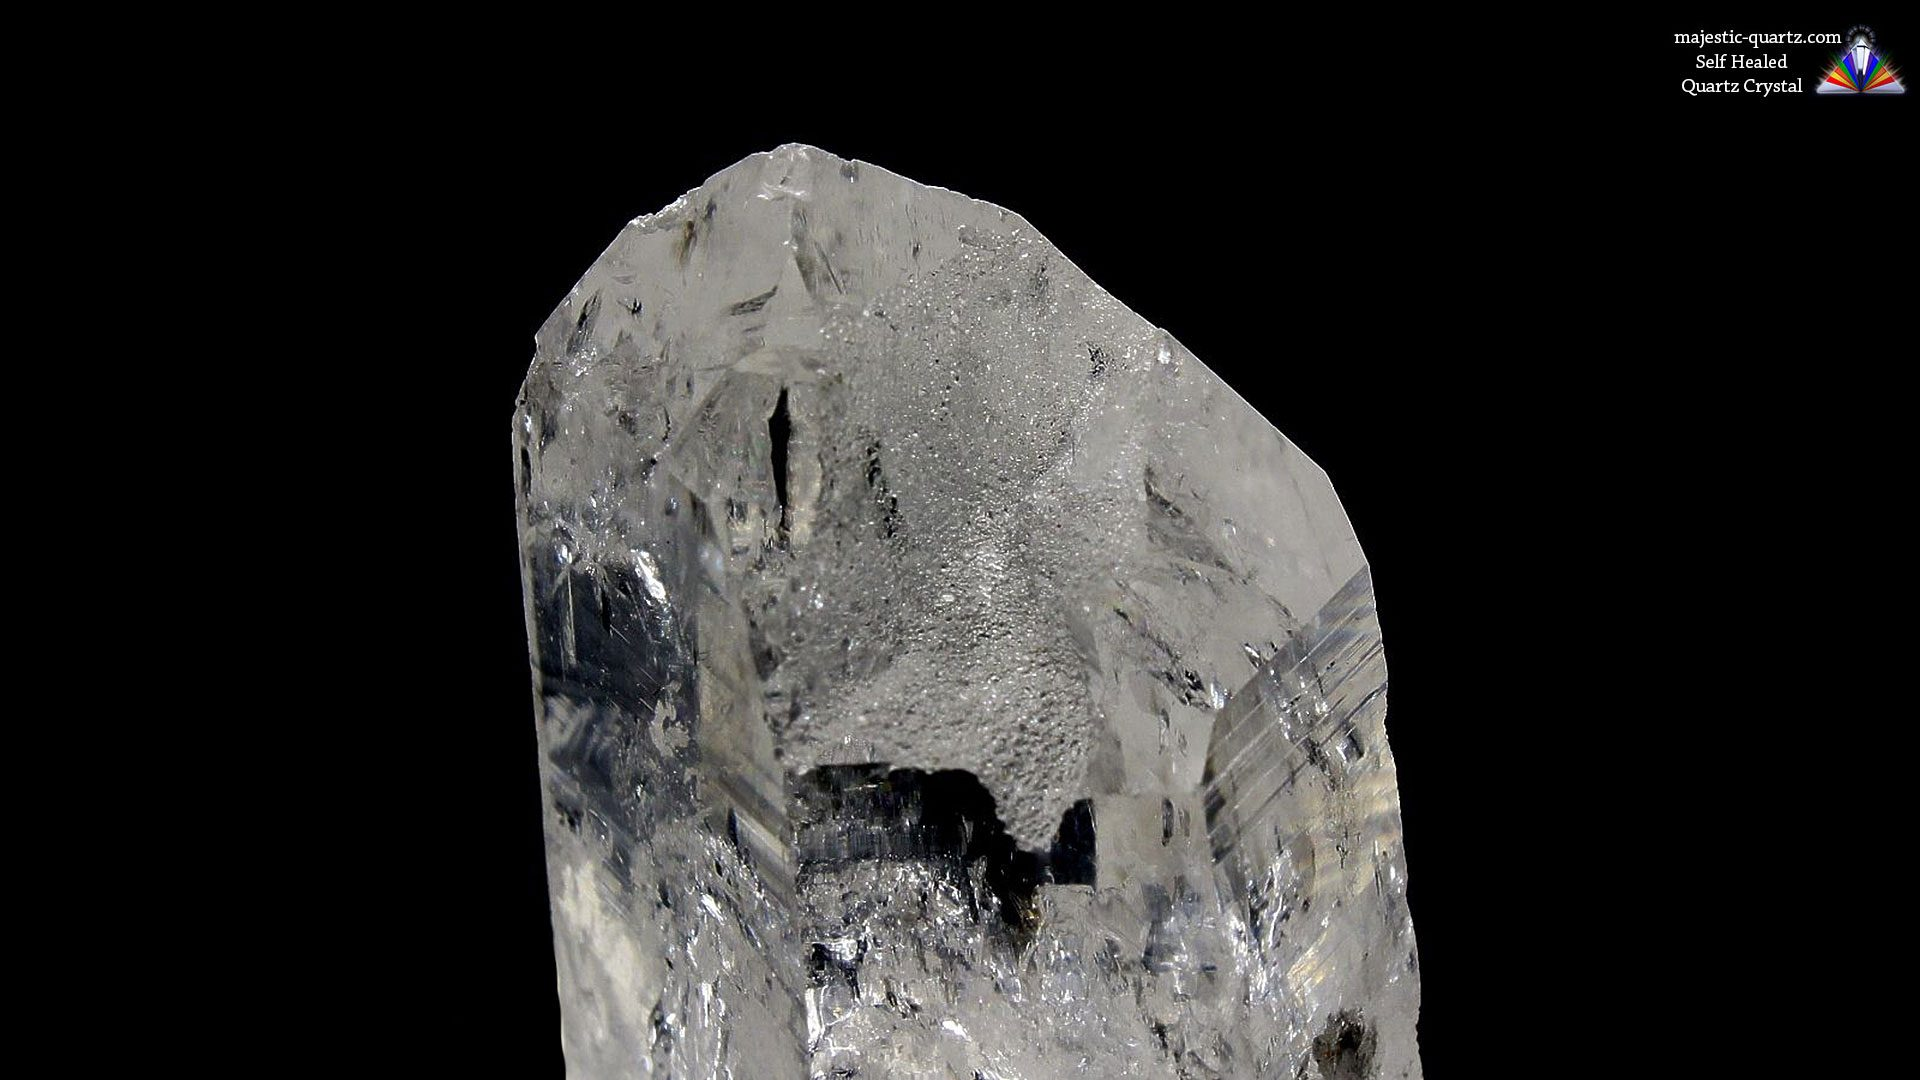 Self Healed Quartz Crystal, Termination faces had been damaged and self repaired - Photograph by Anthony Bradford